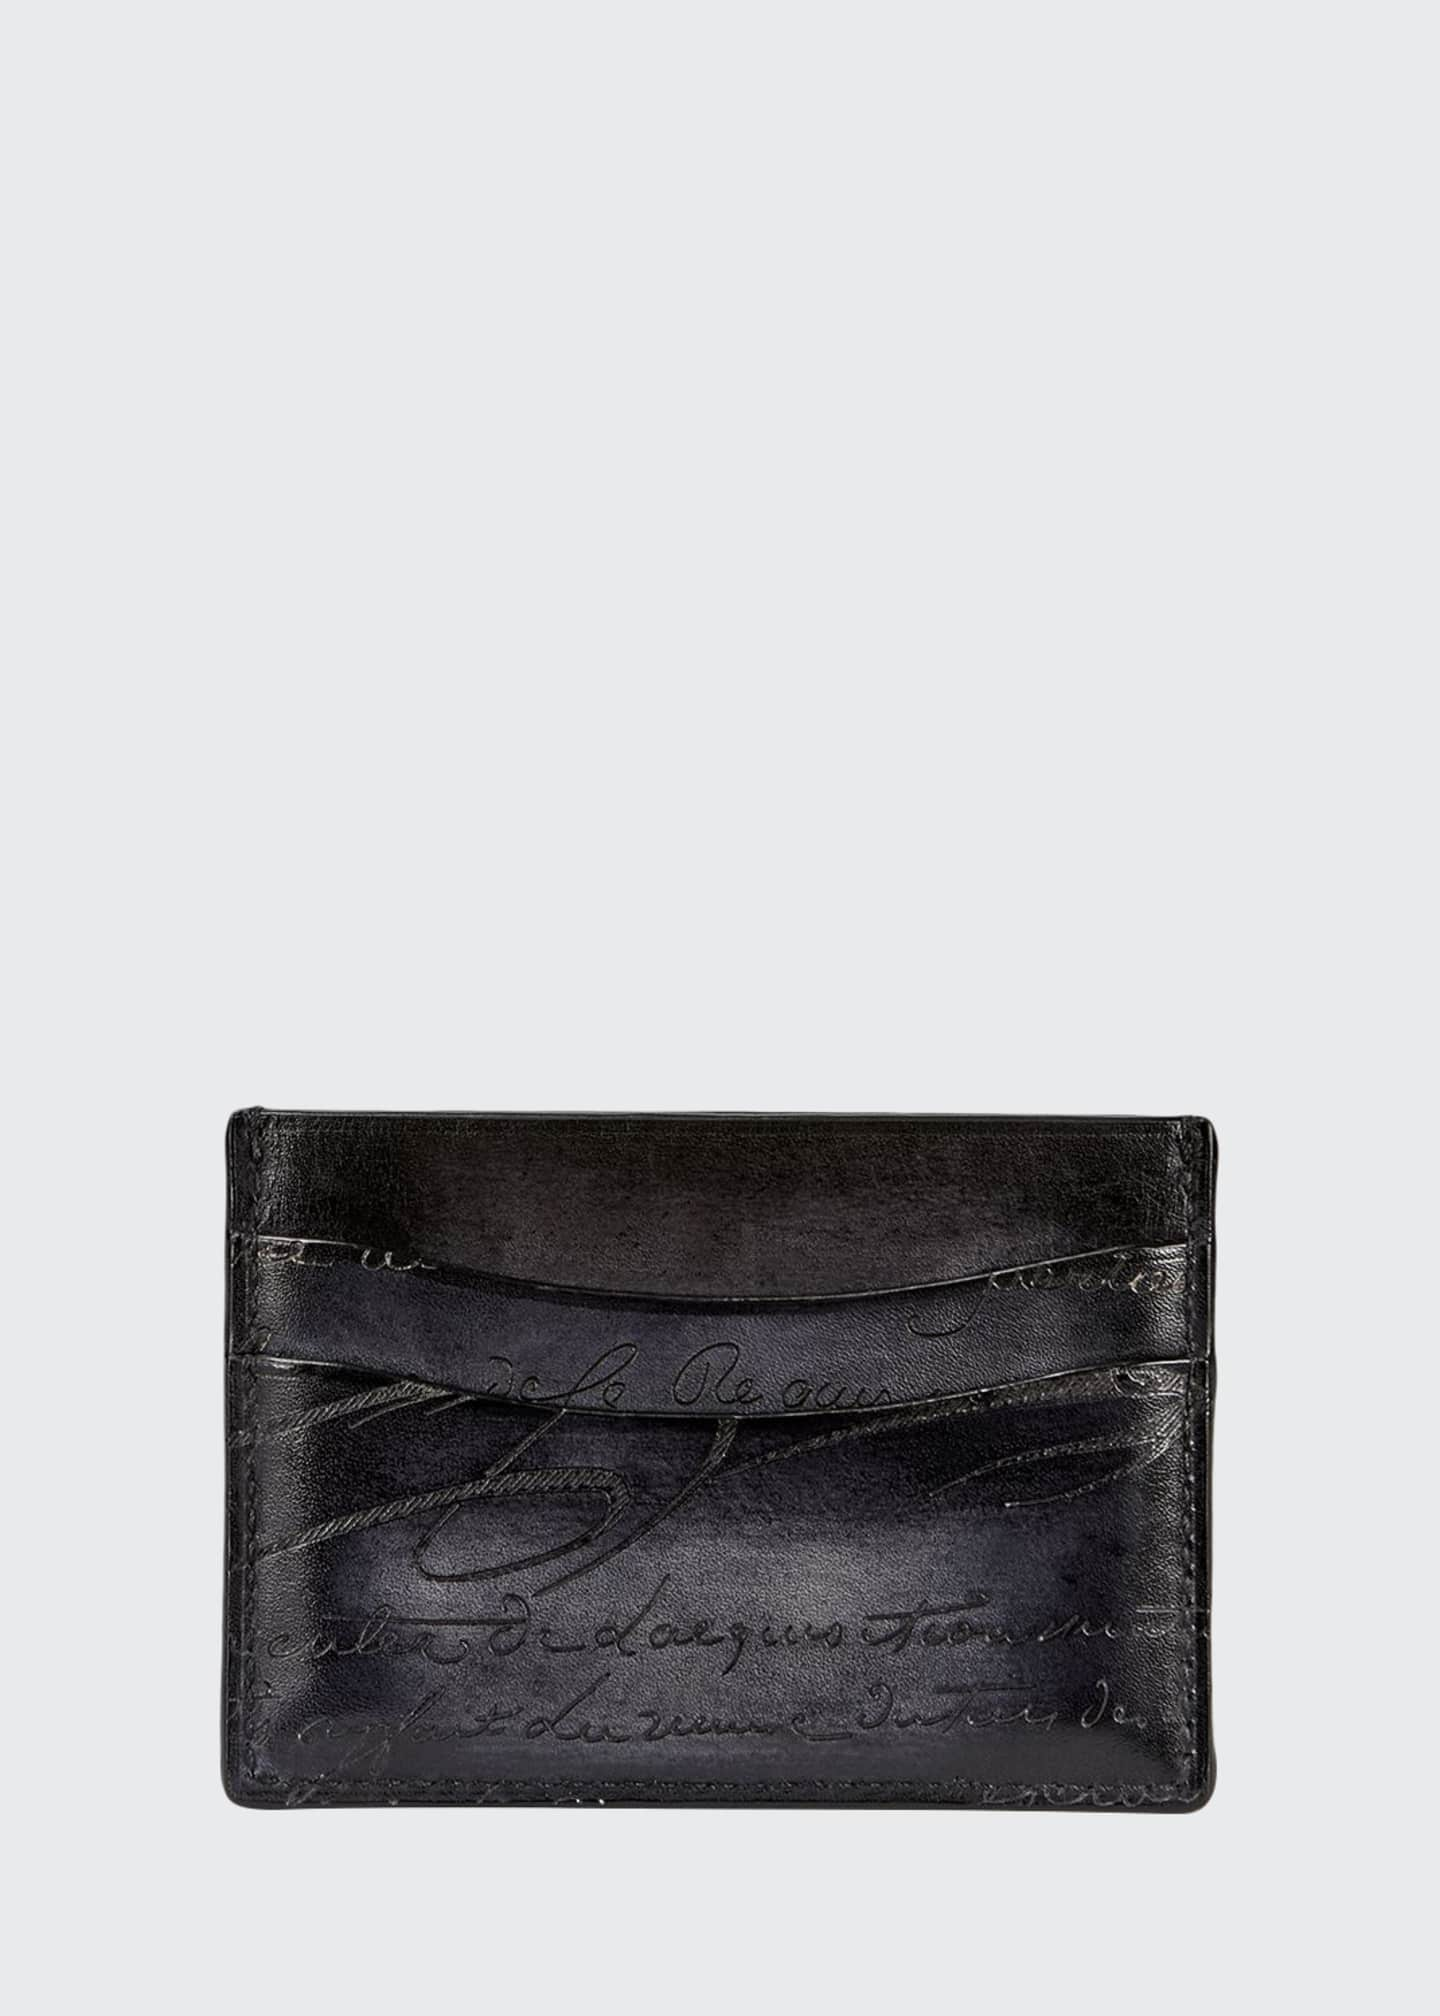 Berluti Bambou Scritto Leather Card Case, Nero